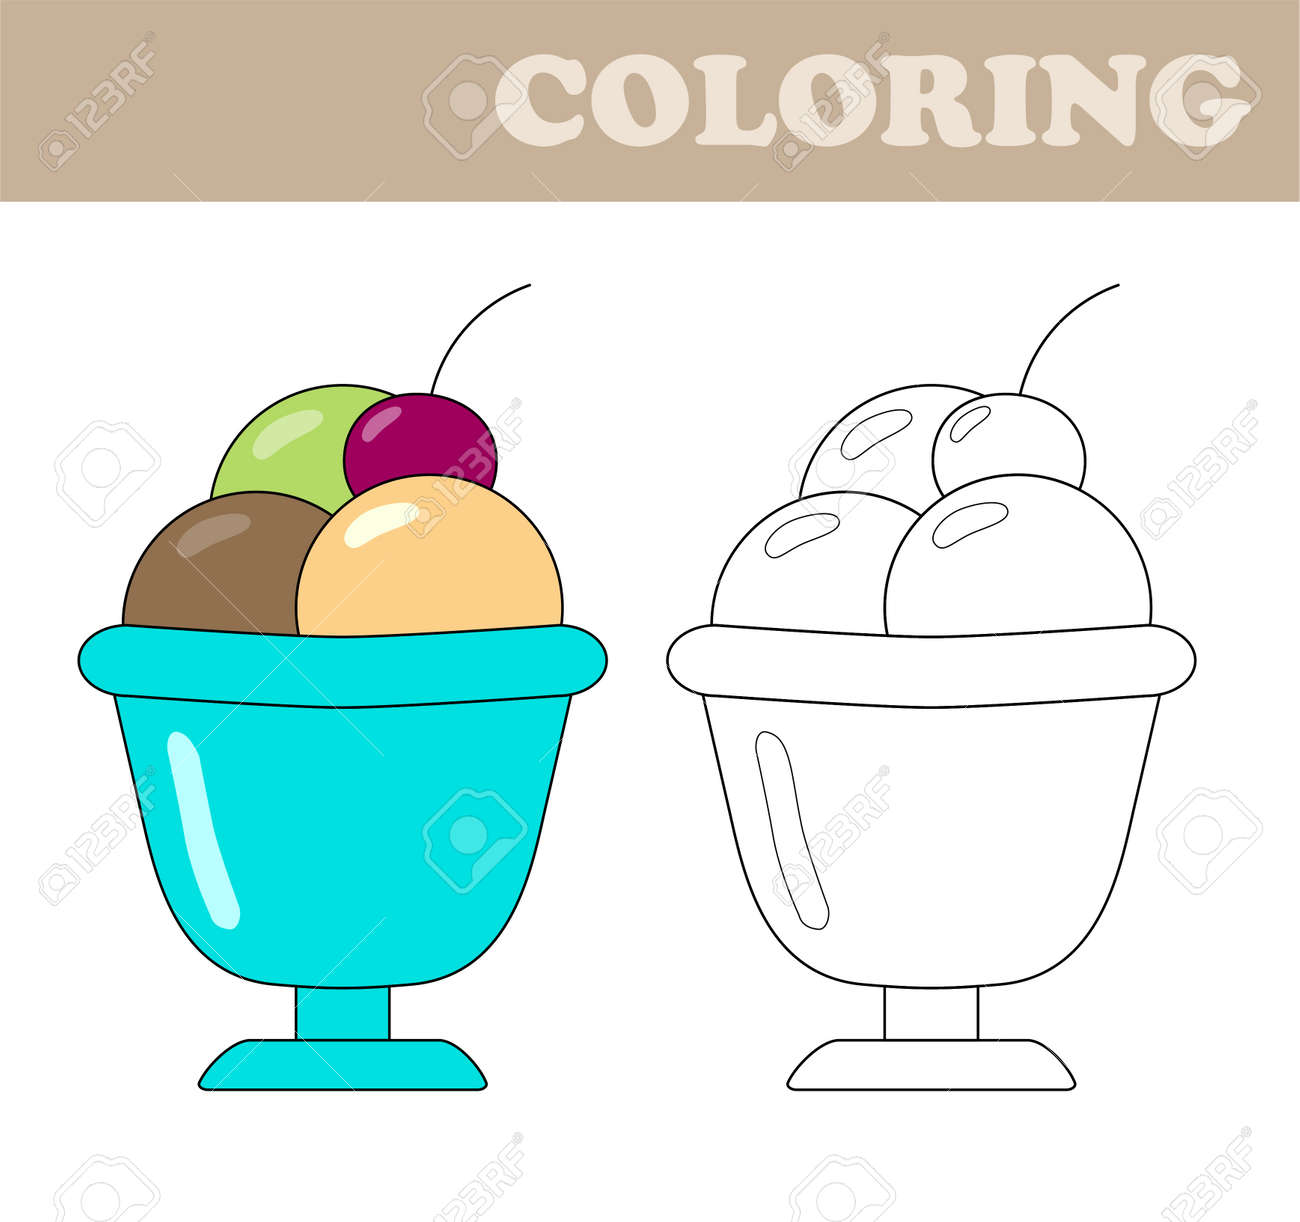 coloring page with ice